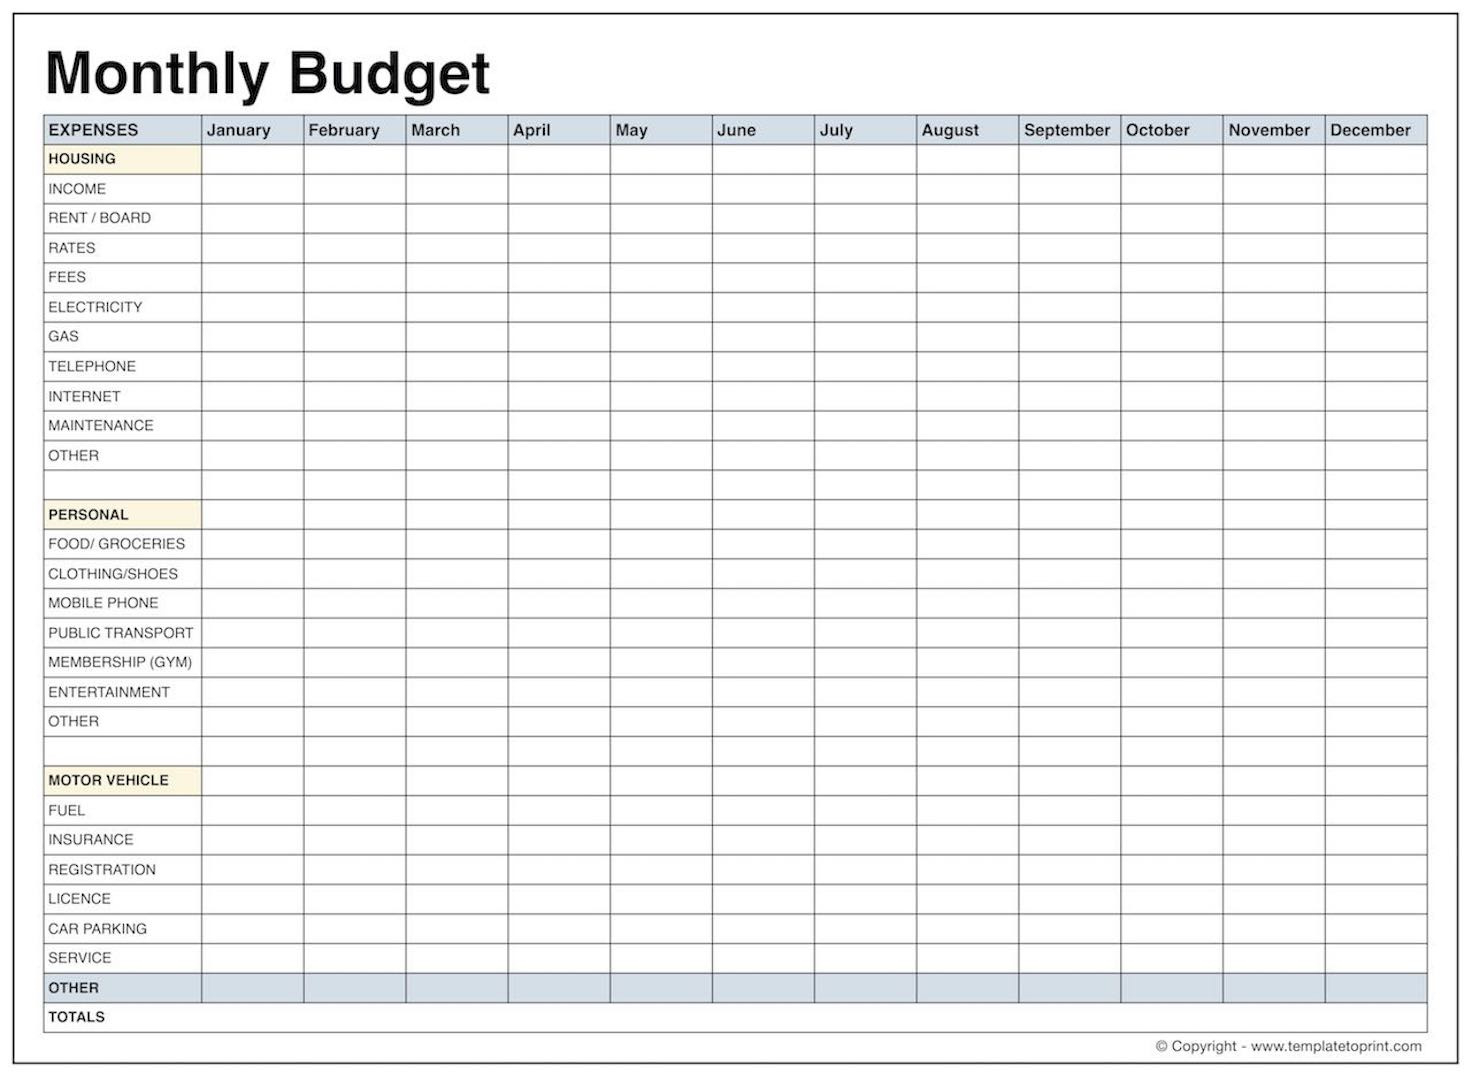 Daily Budget Spreadsheet Pertaining To Daily Budget Spreadsheet Free – Spreadsheet Collections